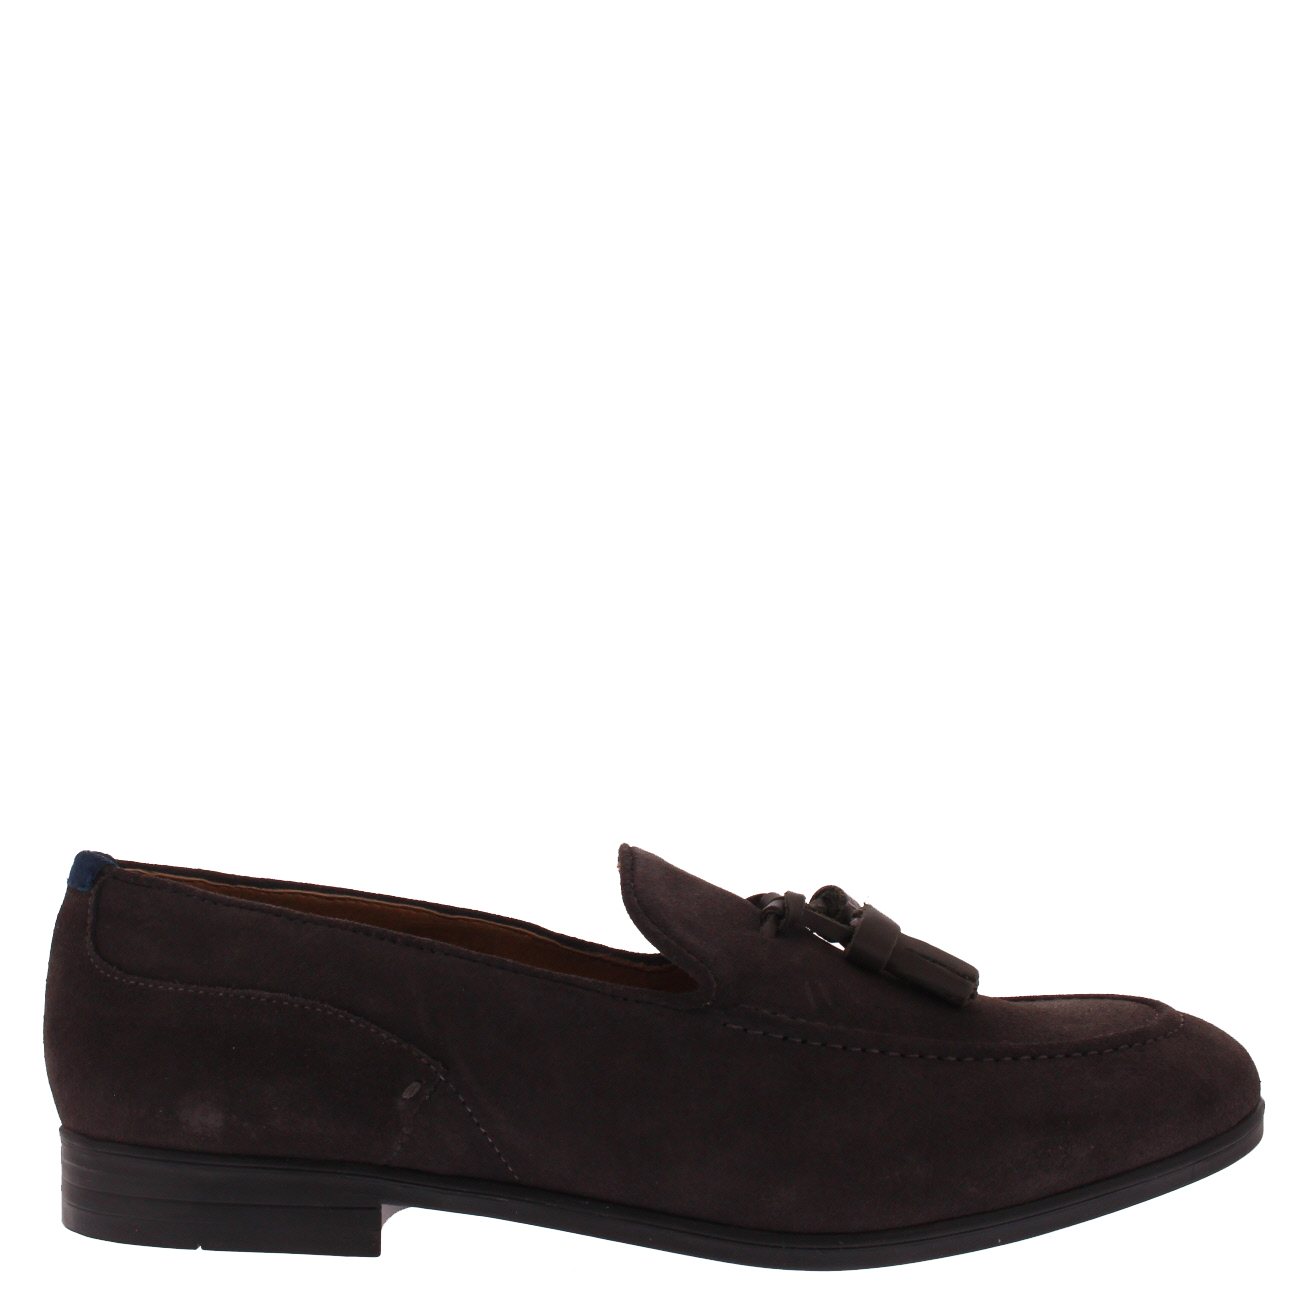 Work Hudson H Loafers Aylsham Office By Crafted Mens Suede Smart HbWeYD2E9I